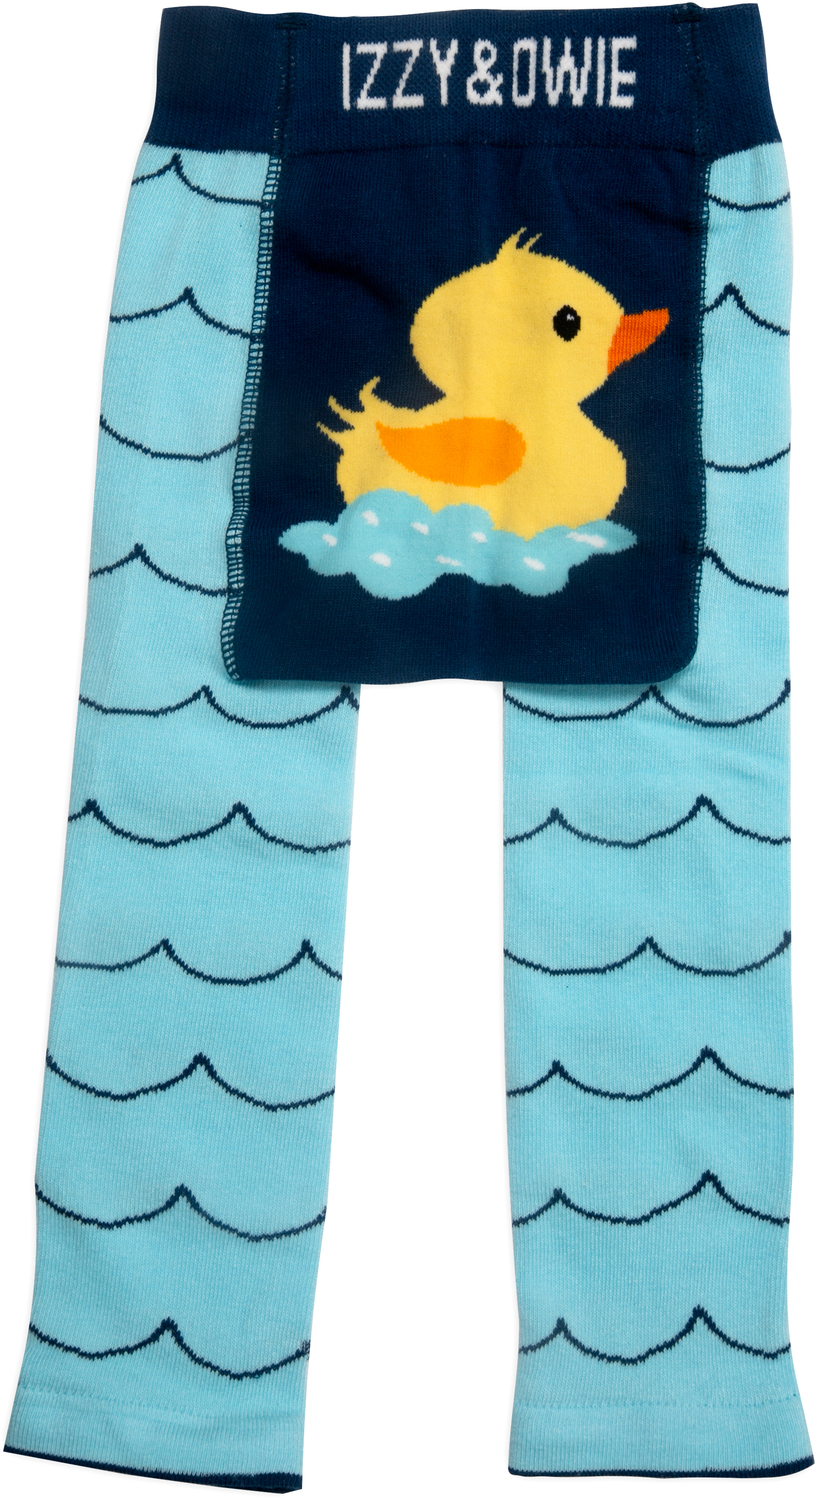 Rubber Ducky by Izzy & Owie - Rubber Ducky - 6-12 Months Baby Leggings